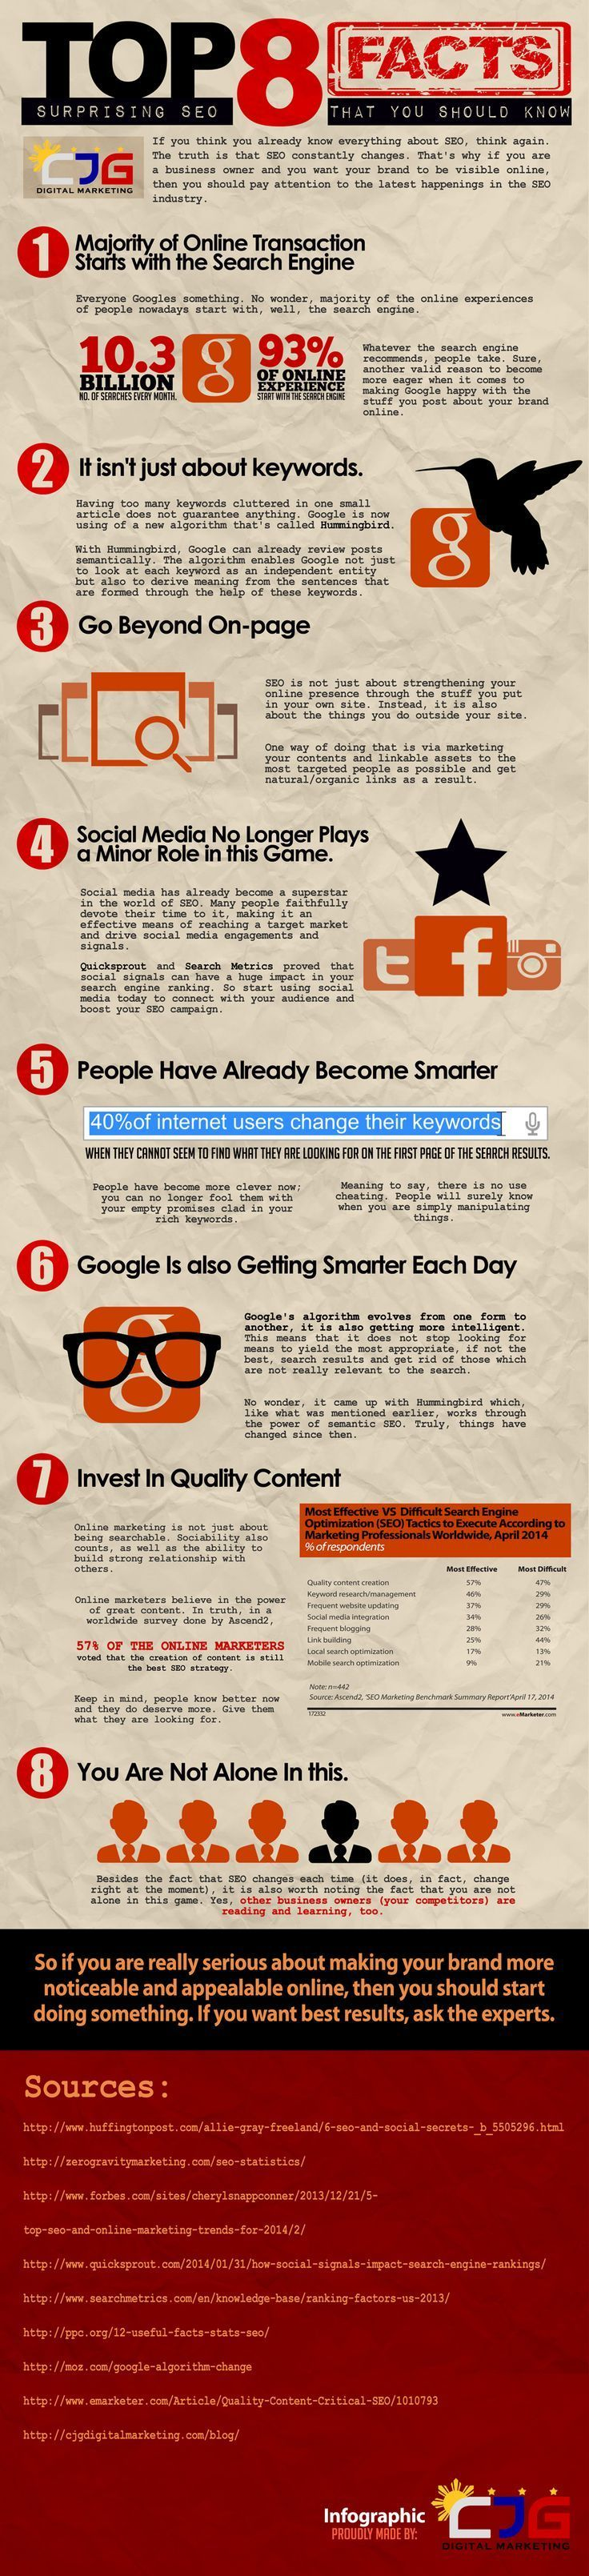 Top 8 SEO Facts That You Should Know | #infographic #seo